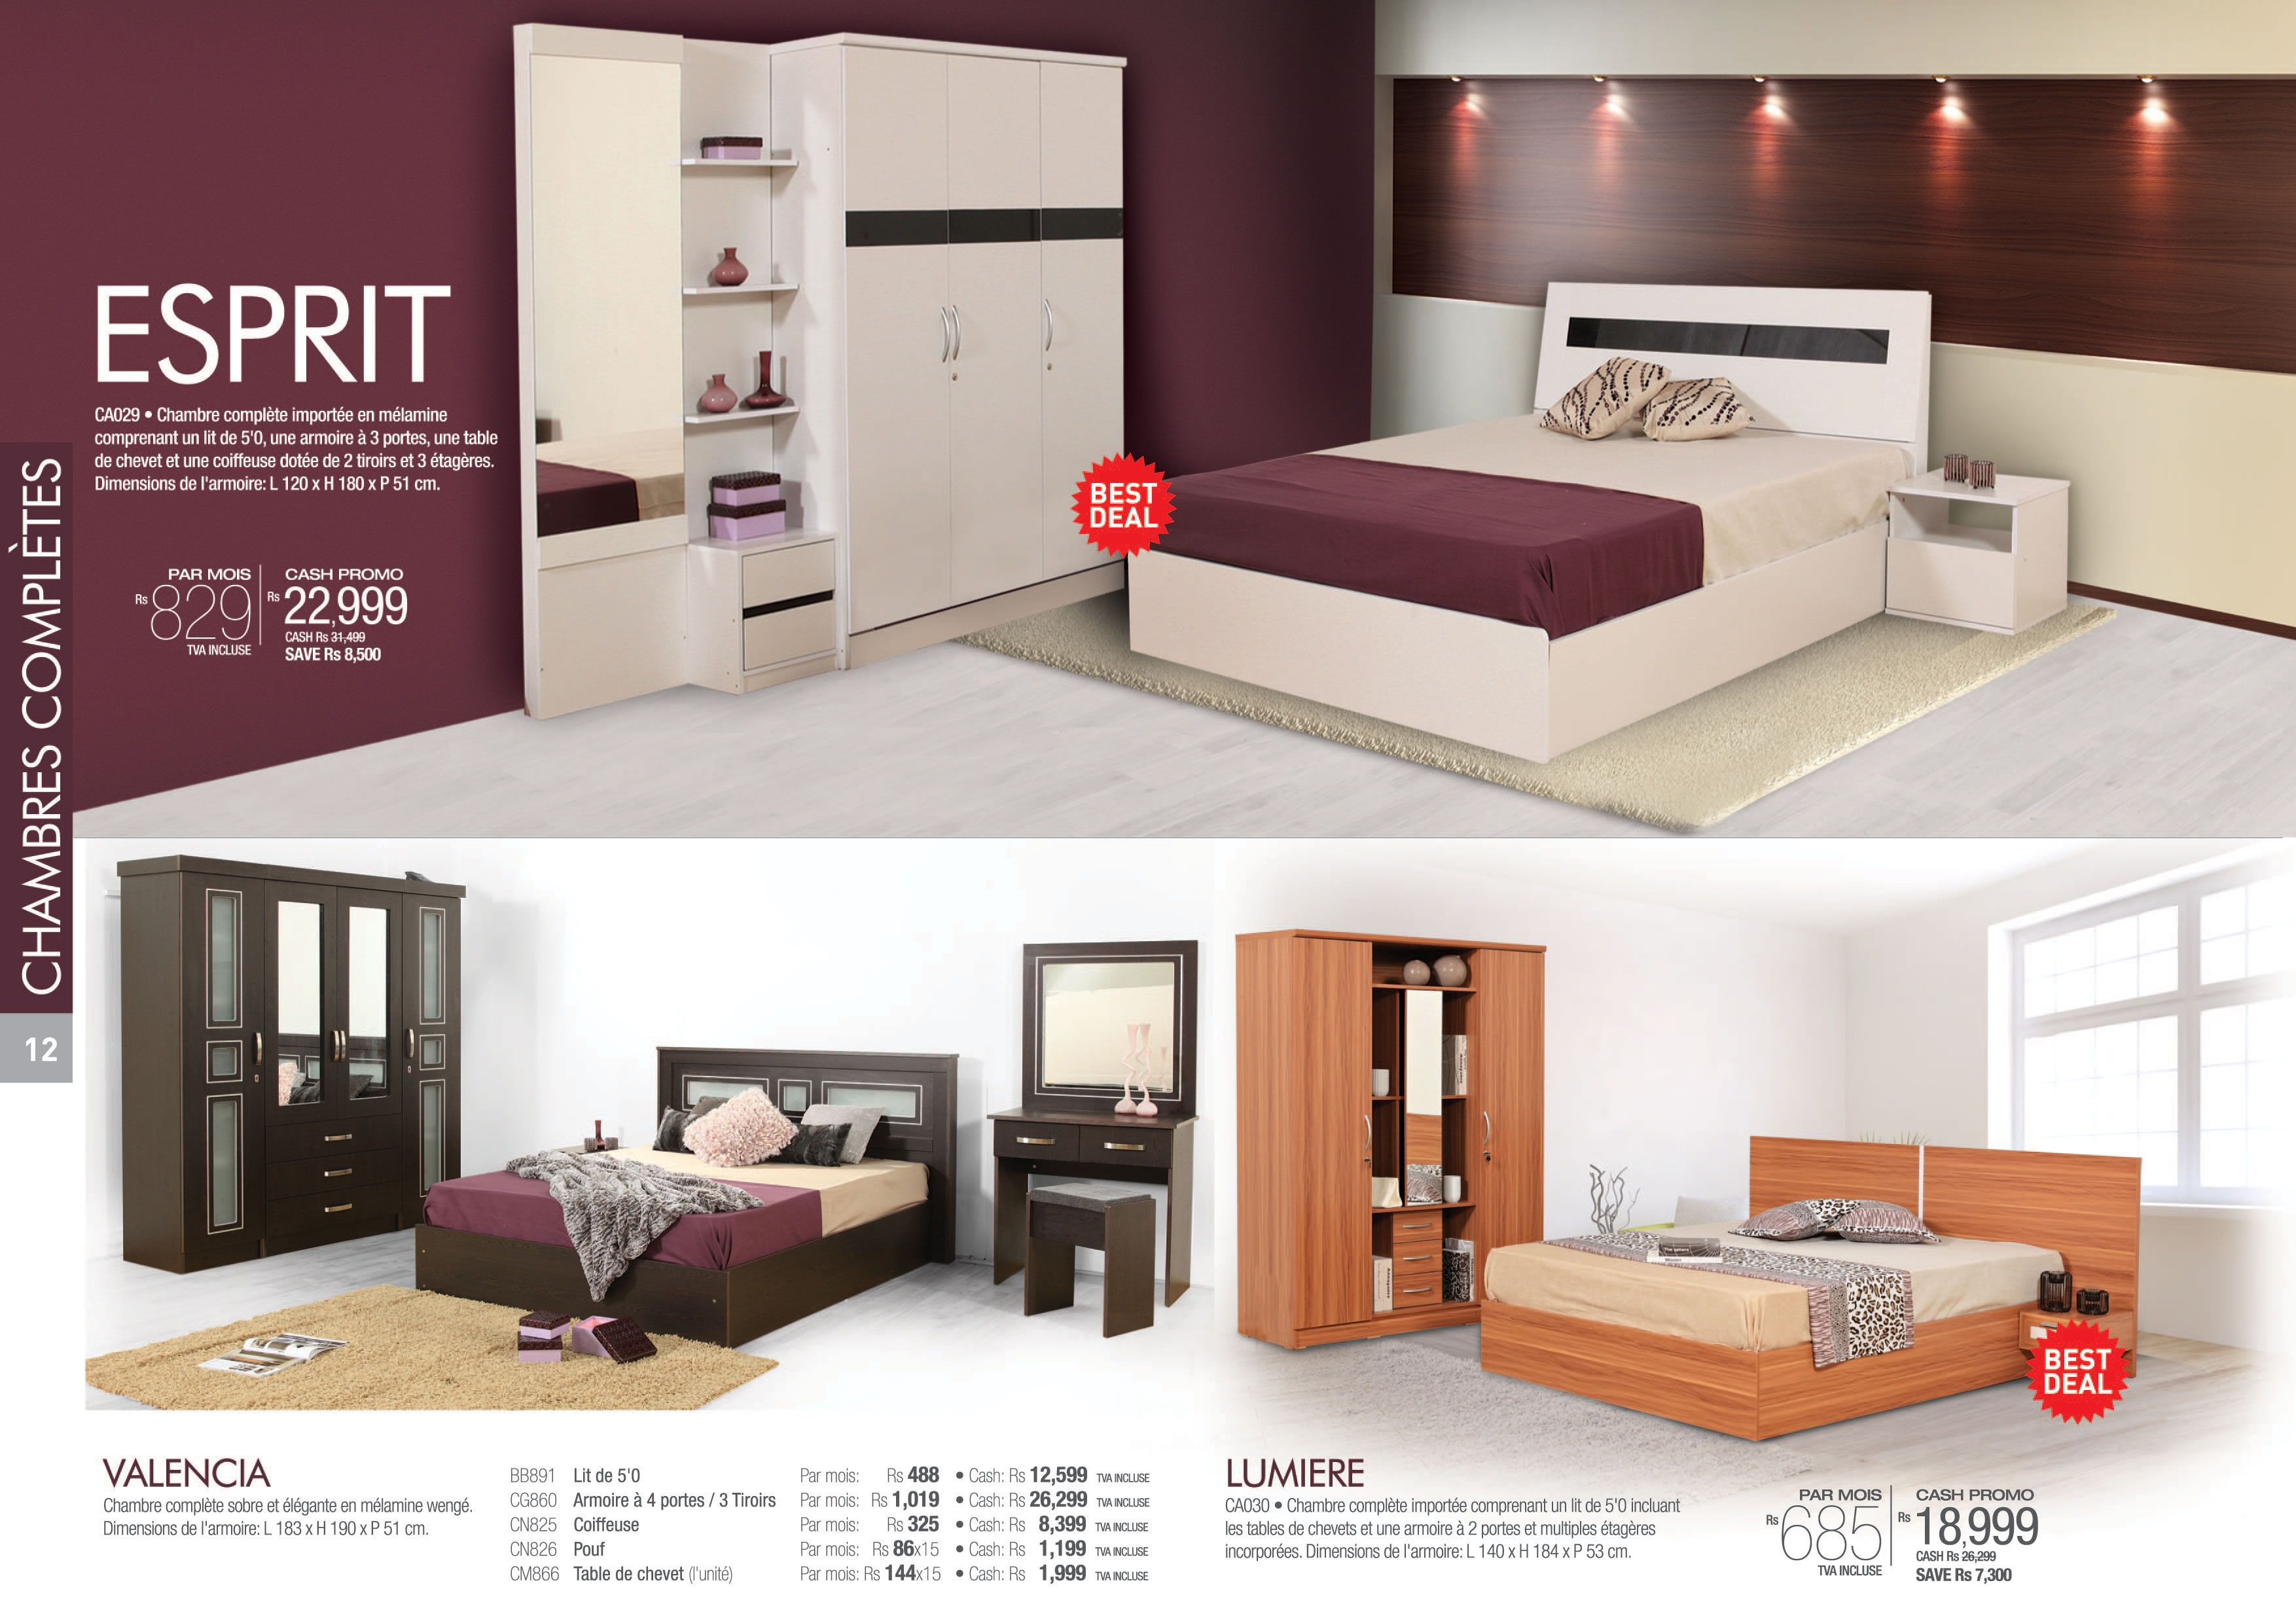 Looking some eye catching and   luxurious bedroom   furniture at good prices    YES    You guessed it right     We have it like emoticon Visit our. Looking some eye catching and   luxurious bedroom